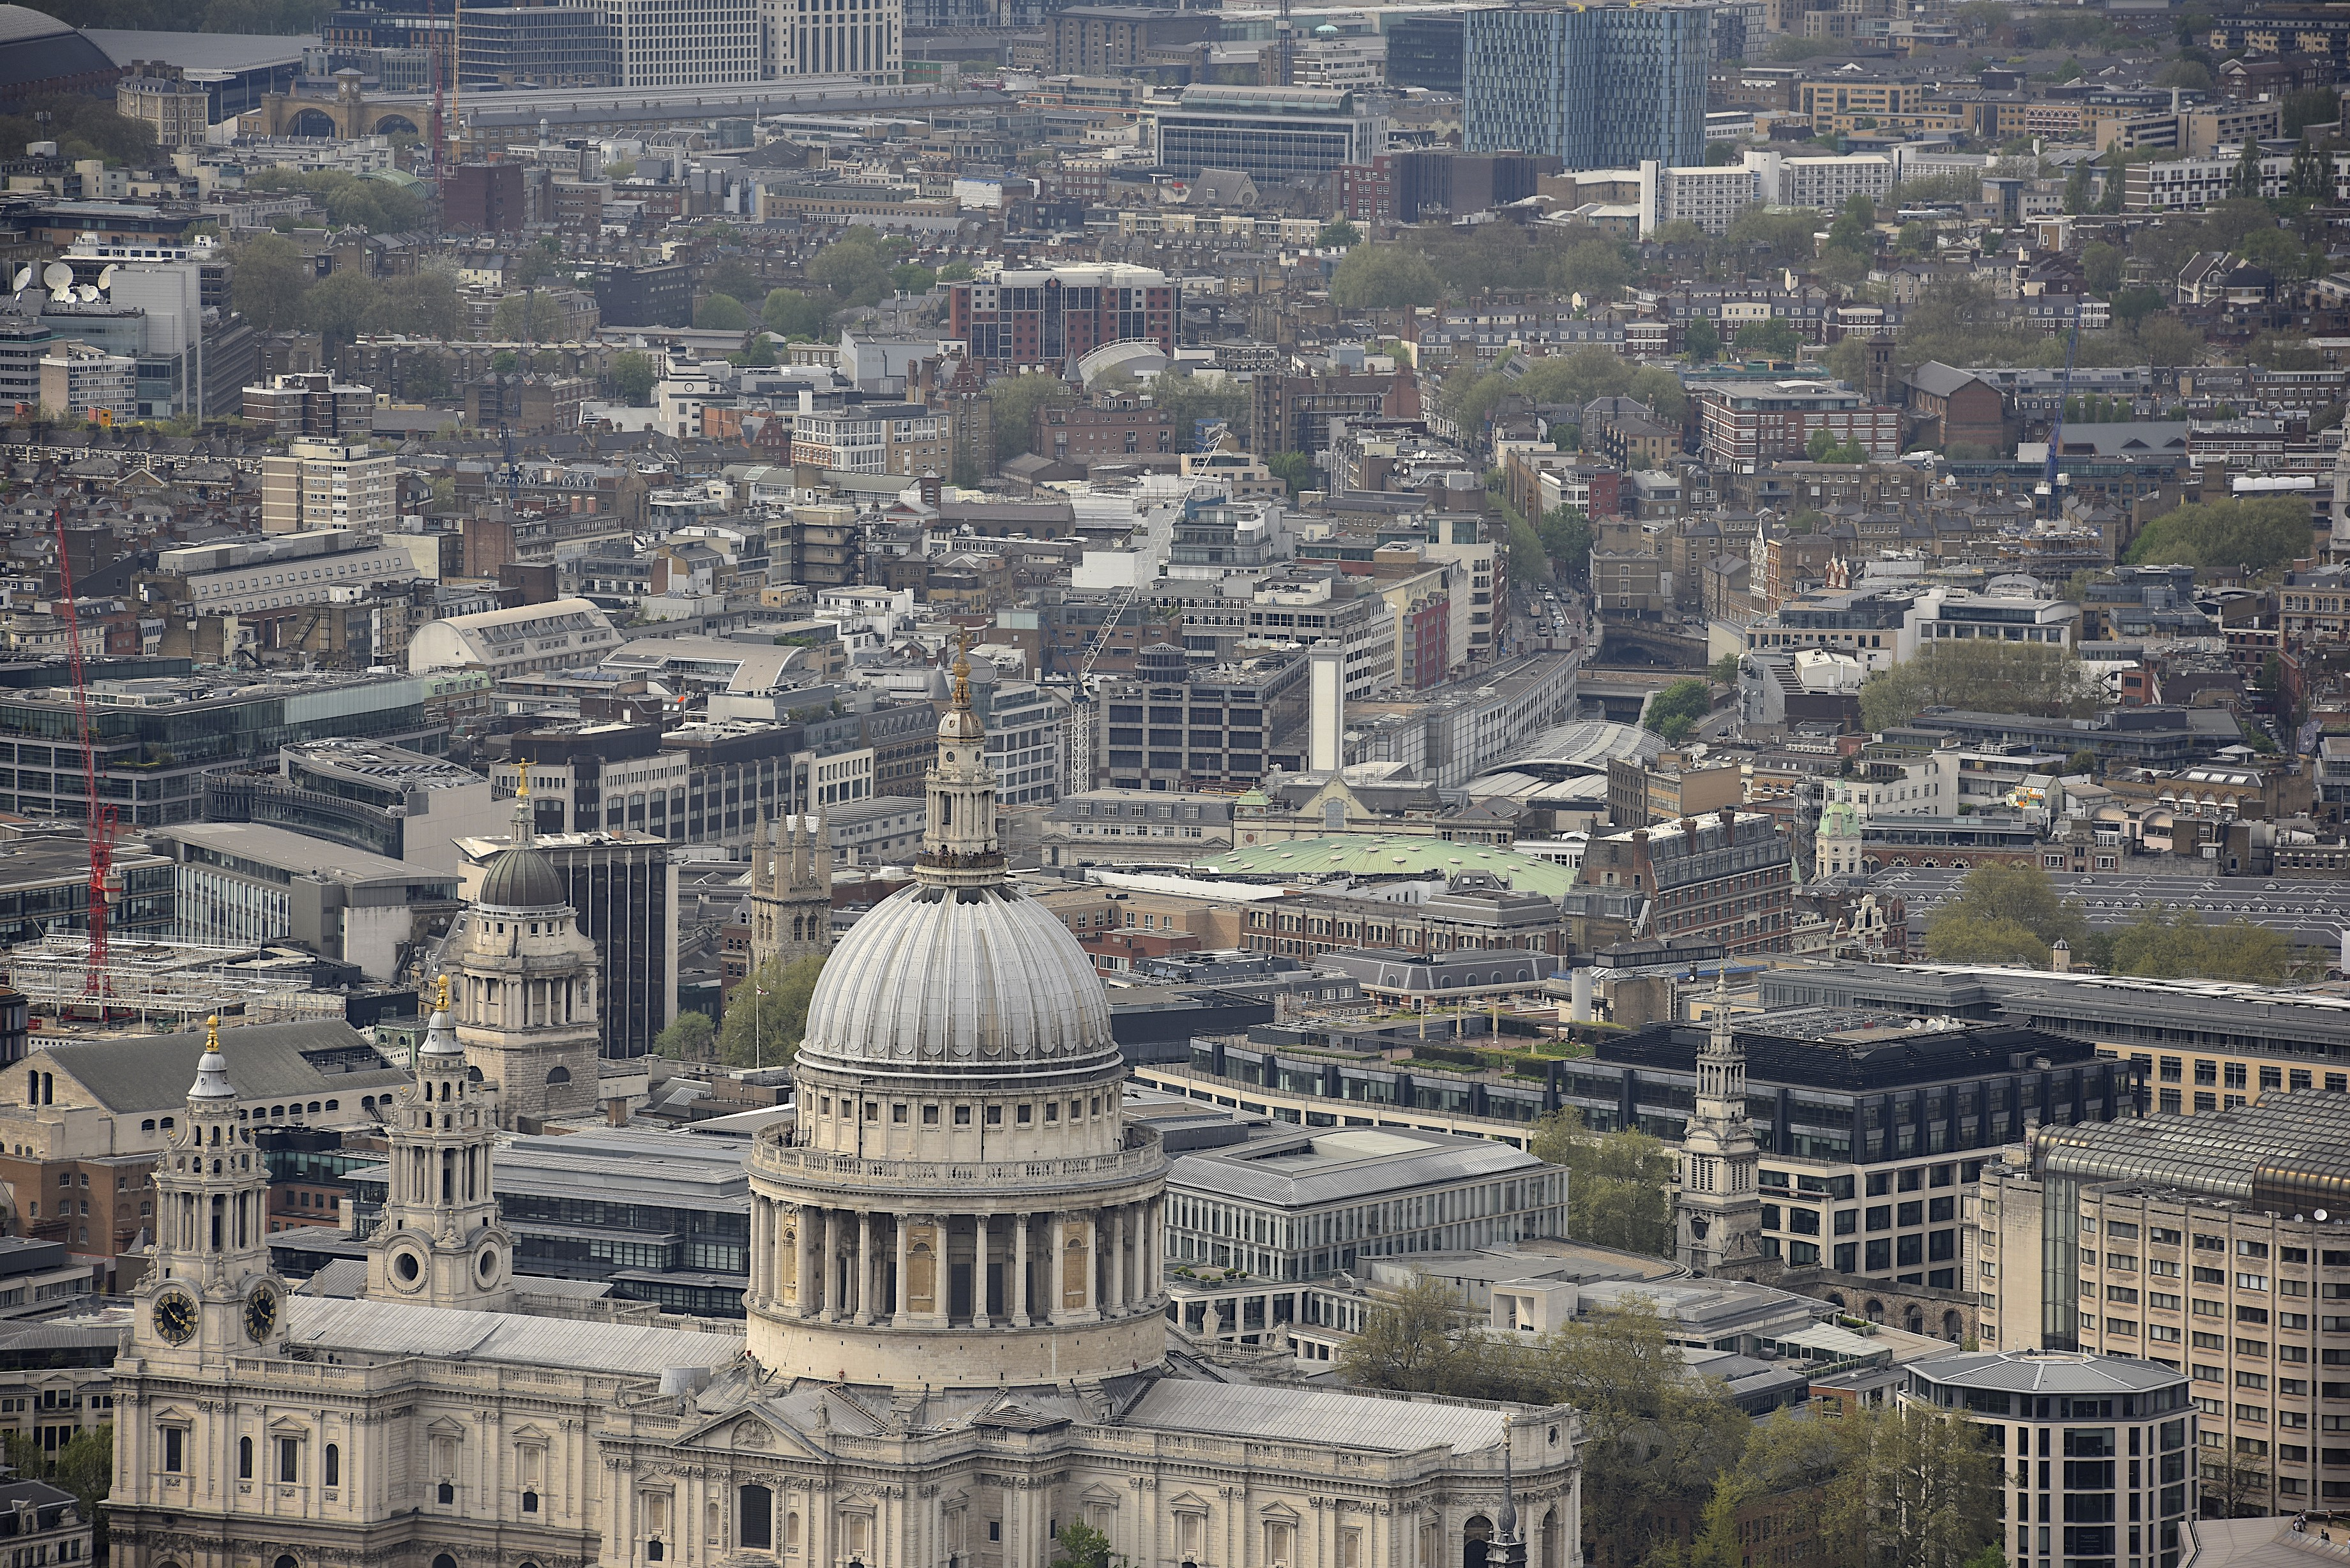 St Pauls Cathedral, as viewed from the Shard